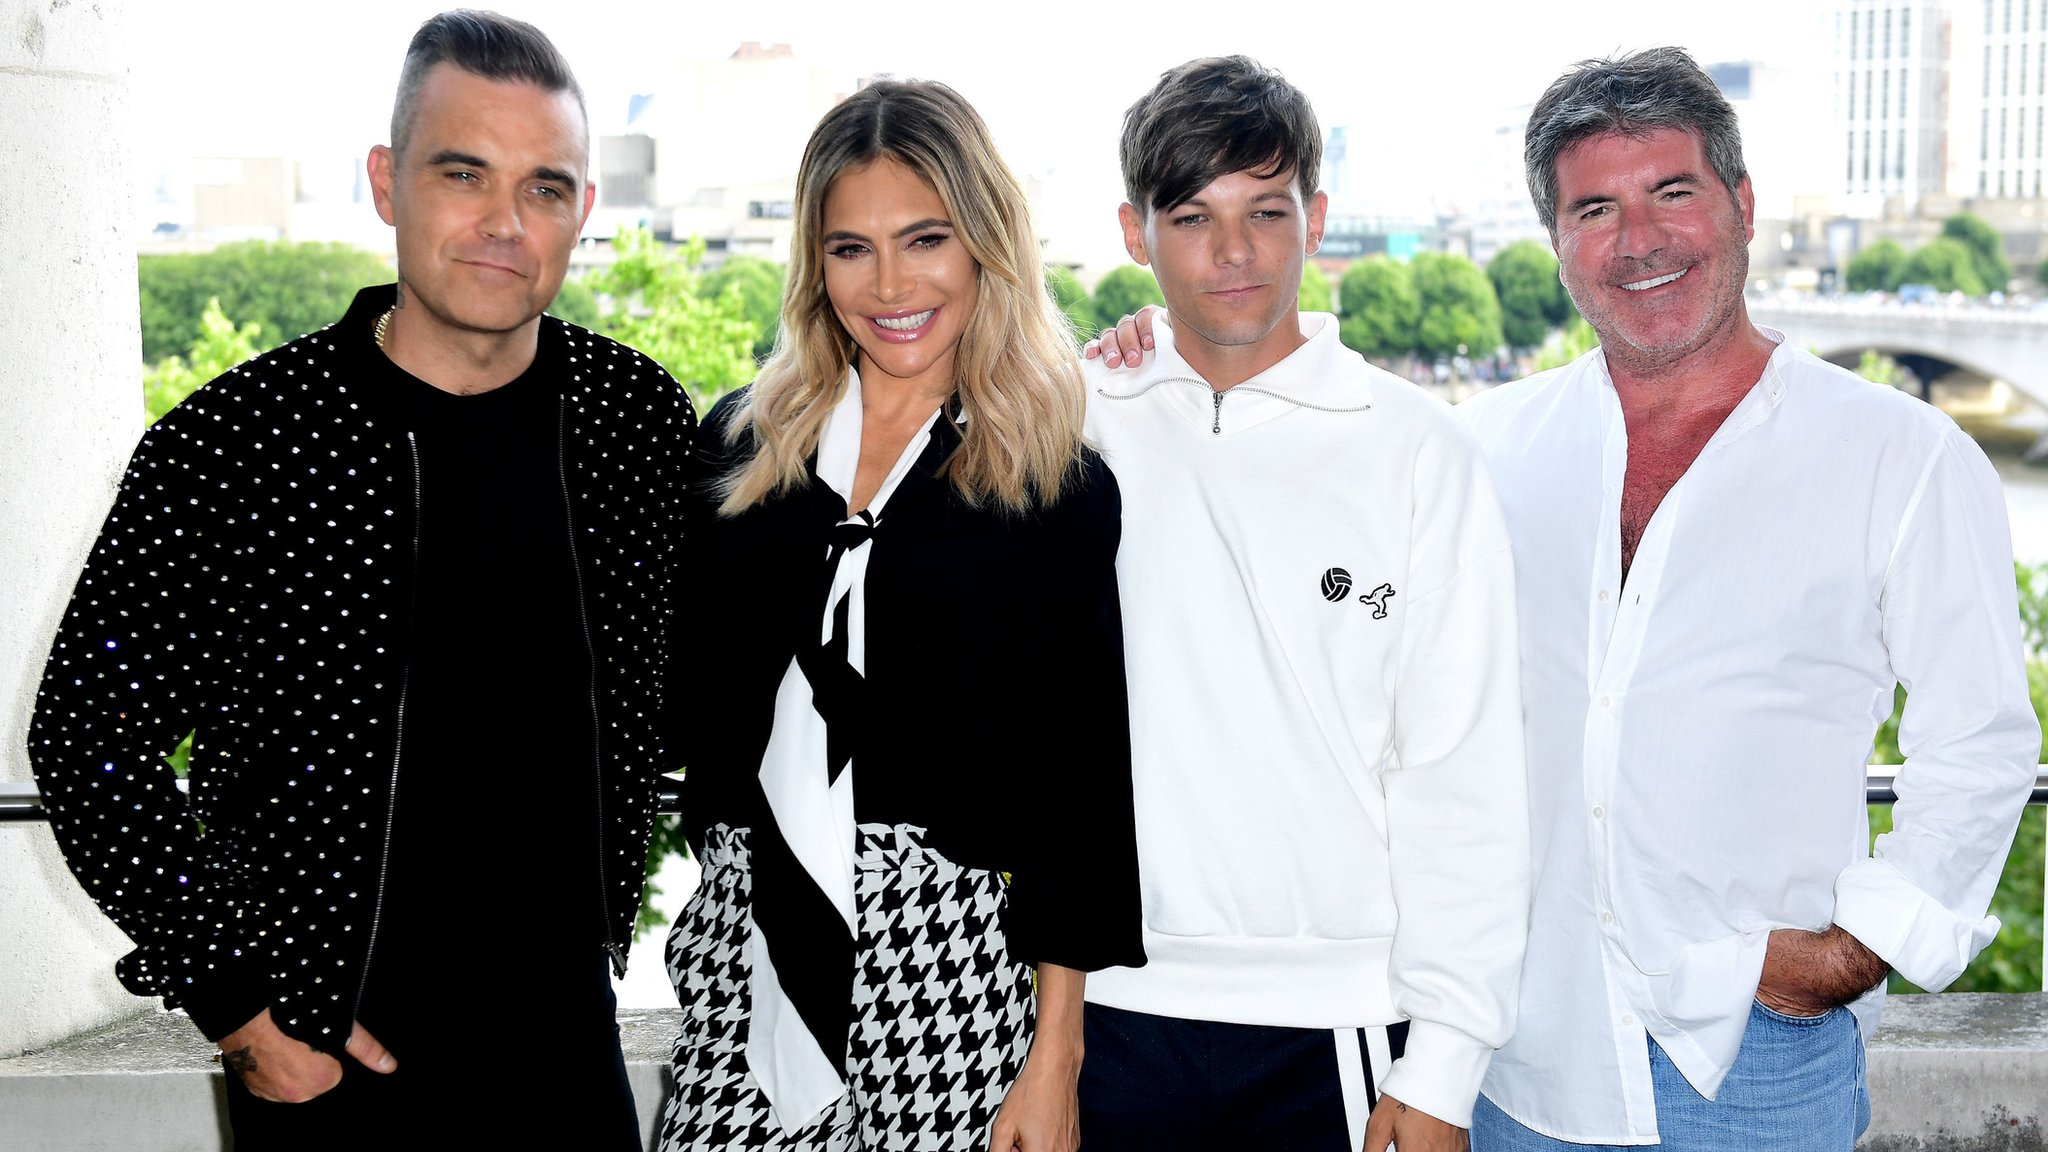 Louis Tomlinson and Robbie Williams named new judges on The X Factor